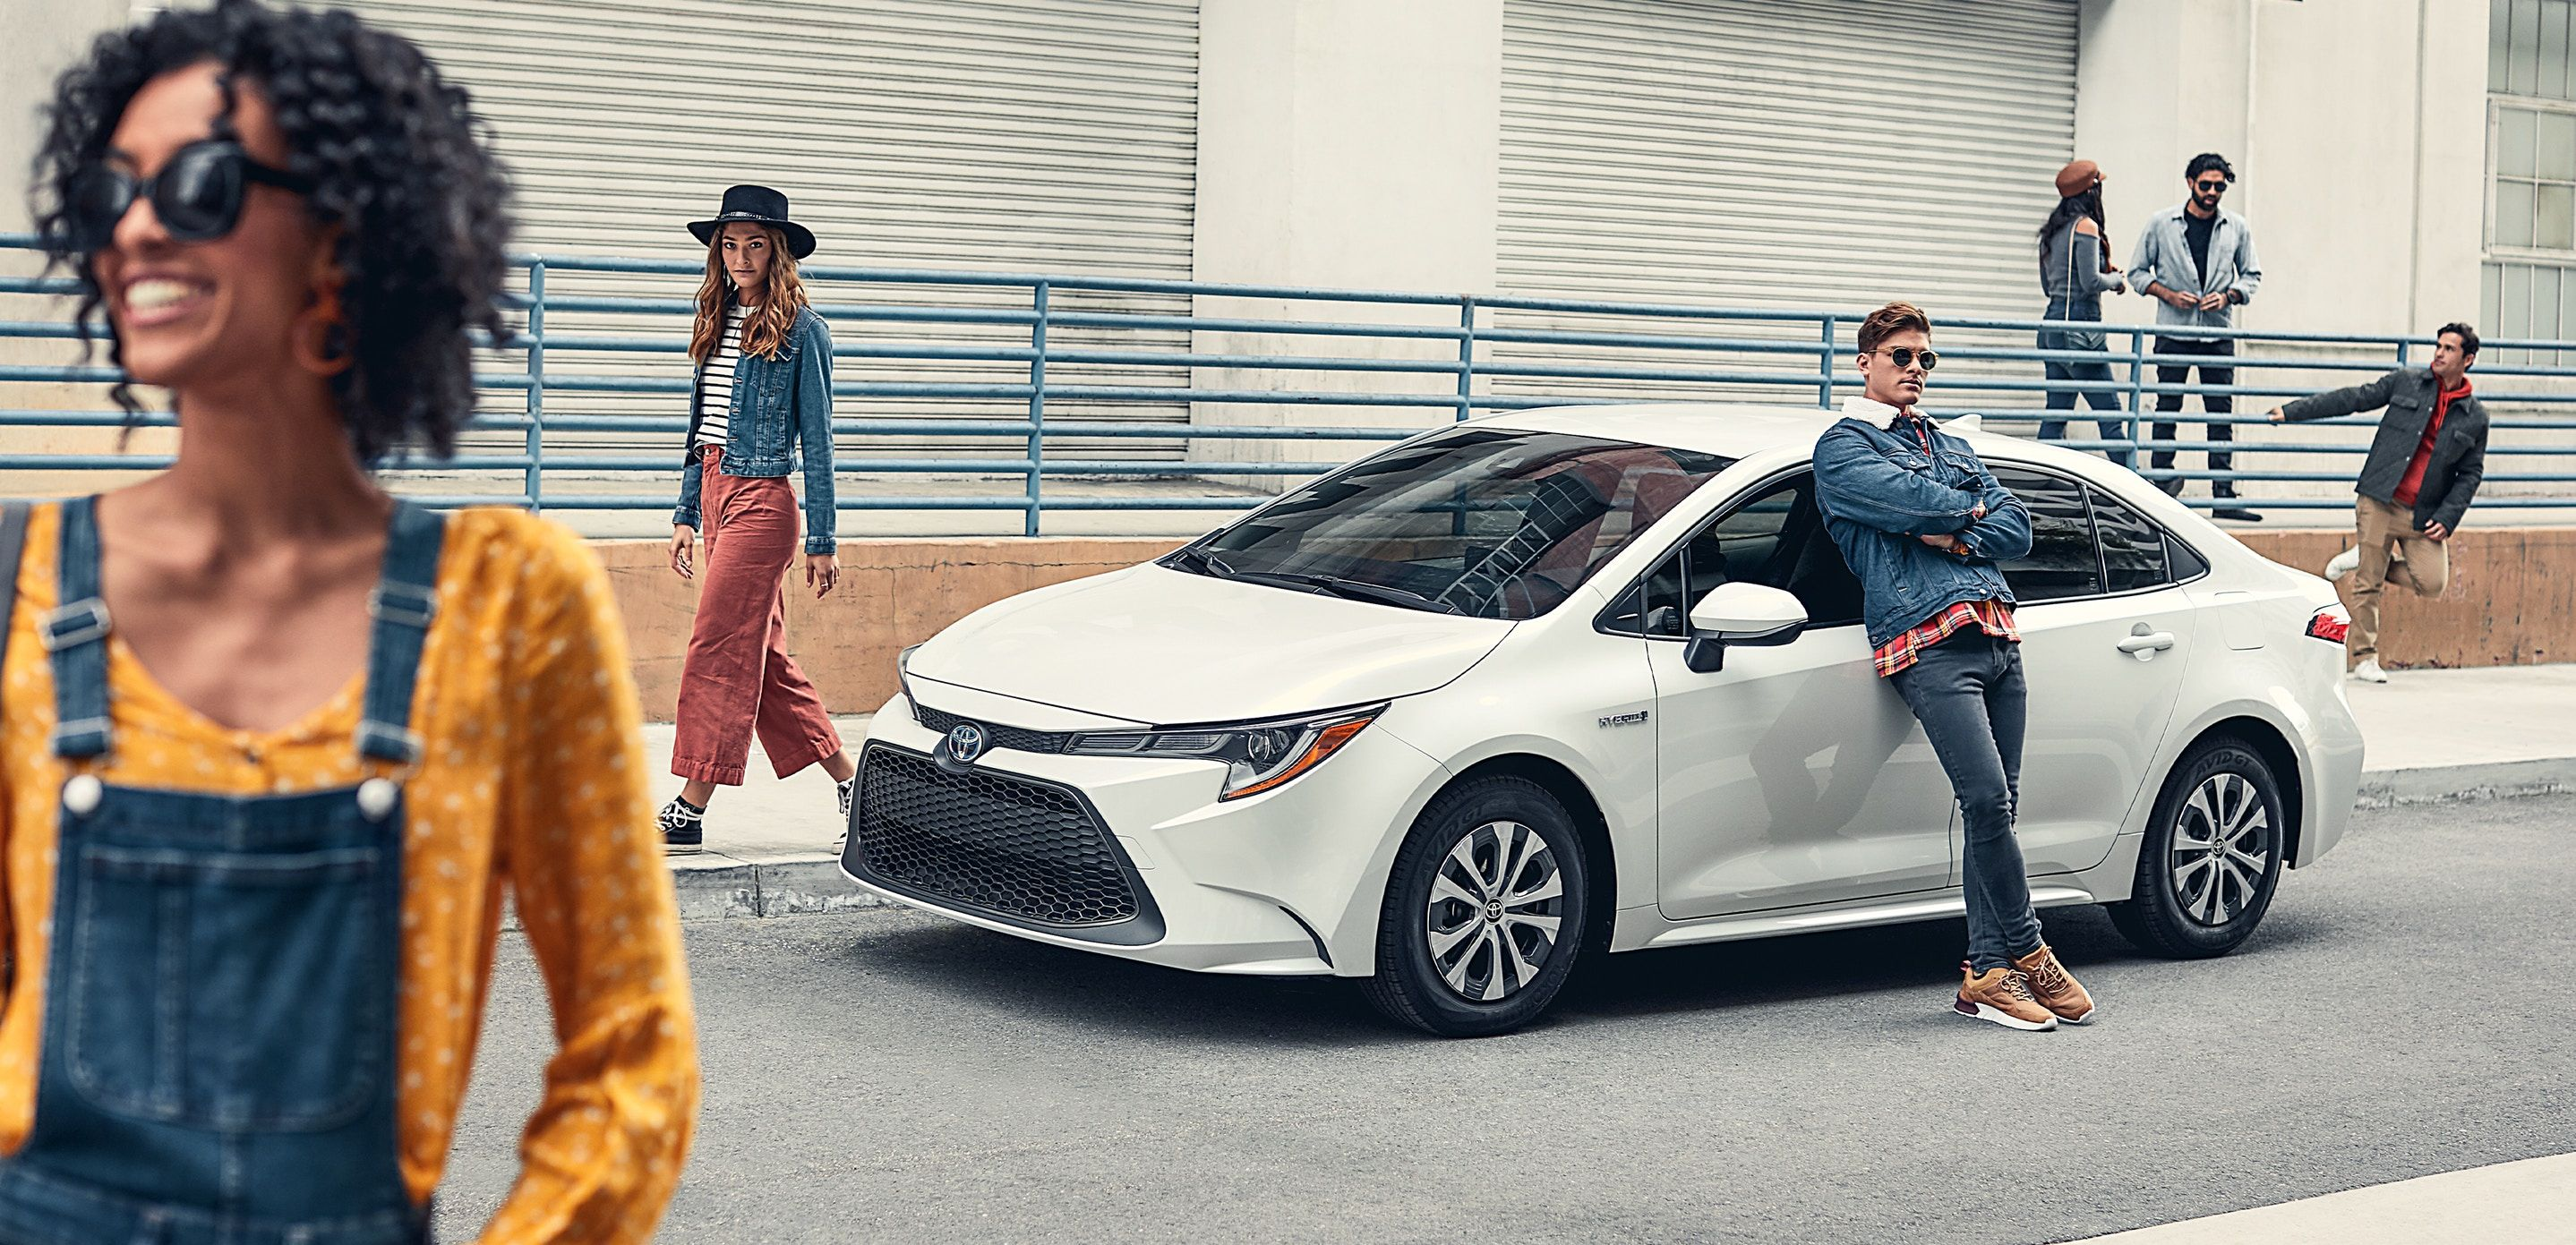 2020 Toyota Corolla Hybrid for Sale near West Chester, PA